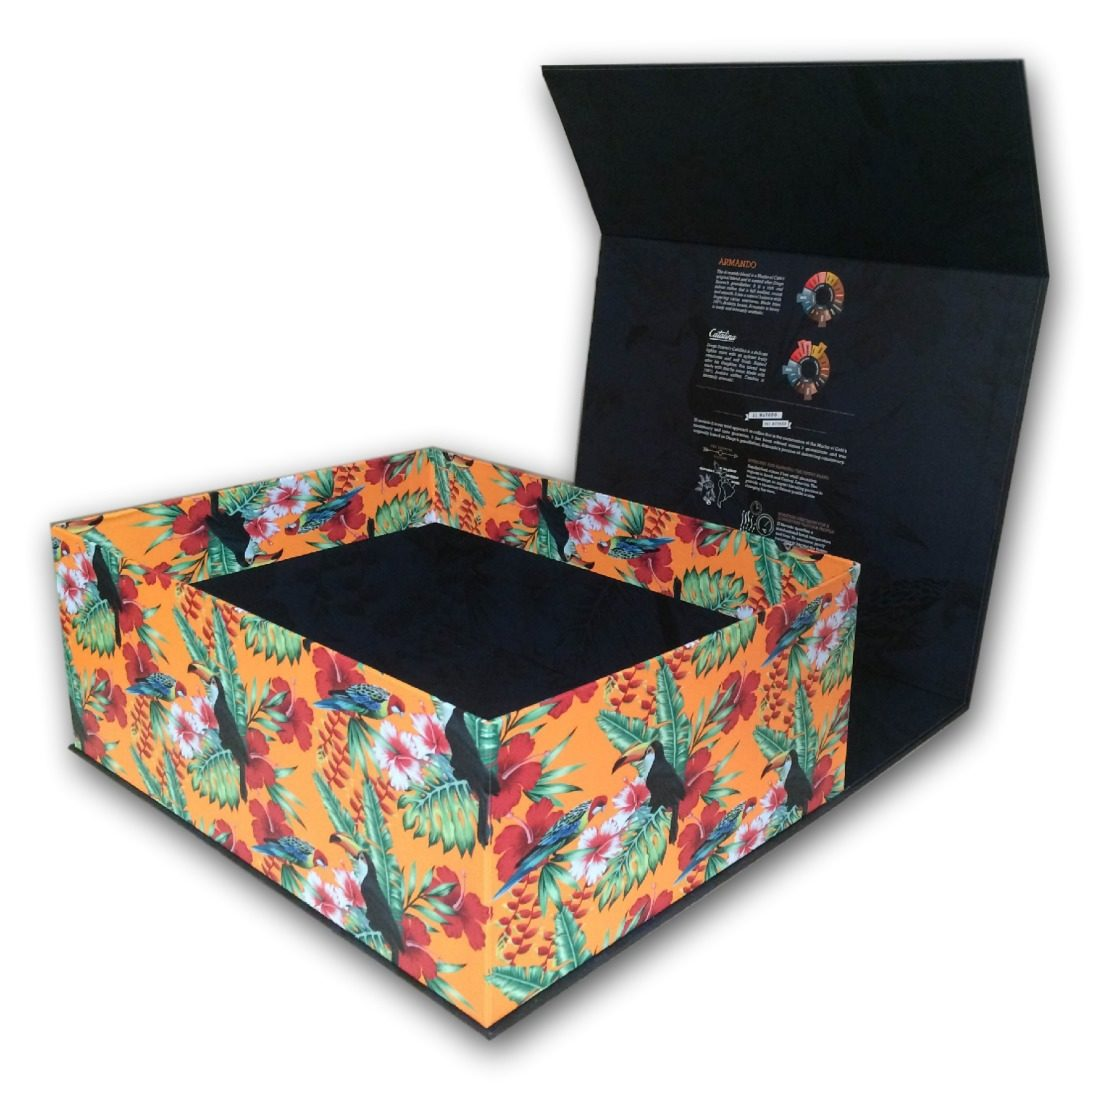 Magnetic Lid Gift Box Open Duncan Packaging